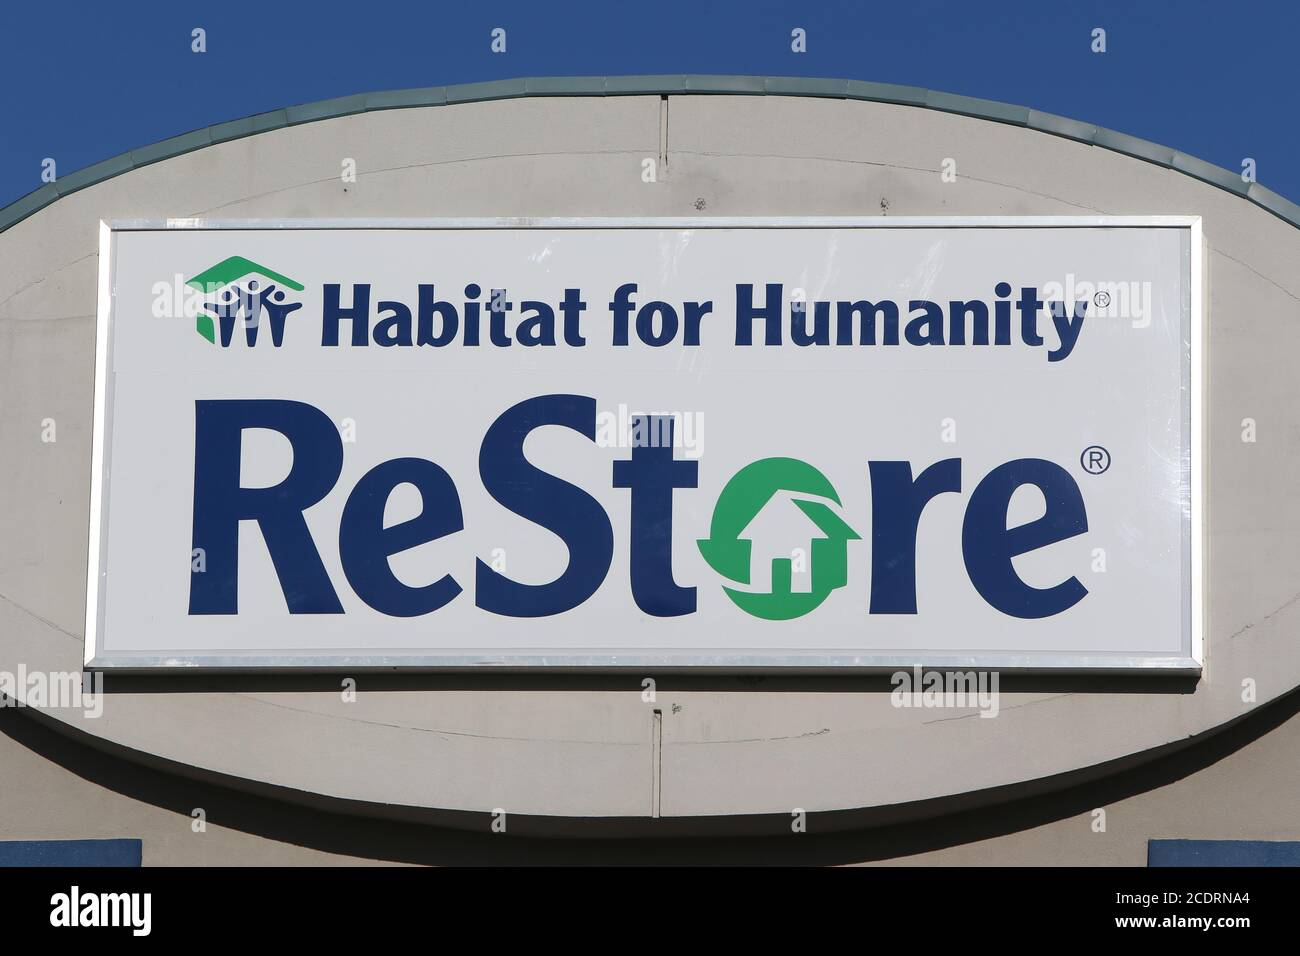 Restore Habitat High Resolution Stock Photography And Images Alamy